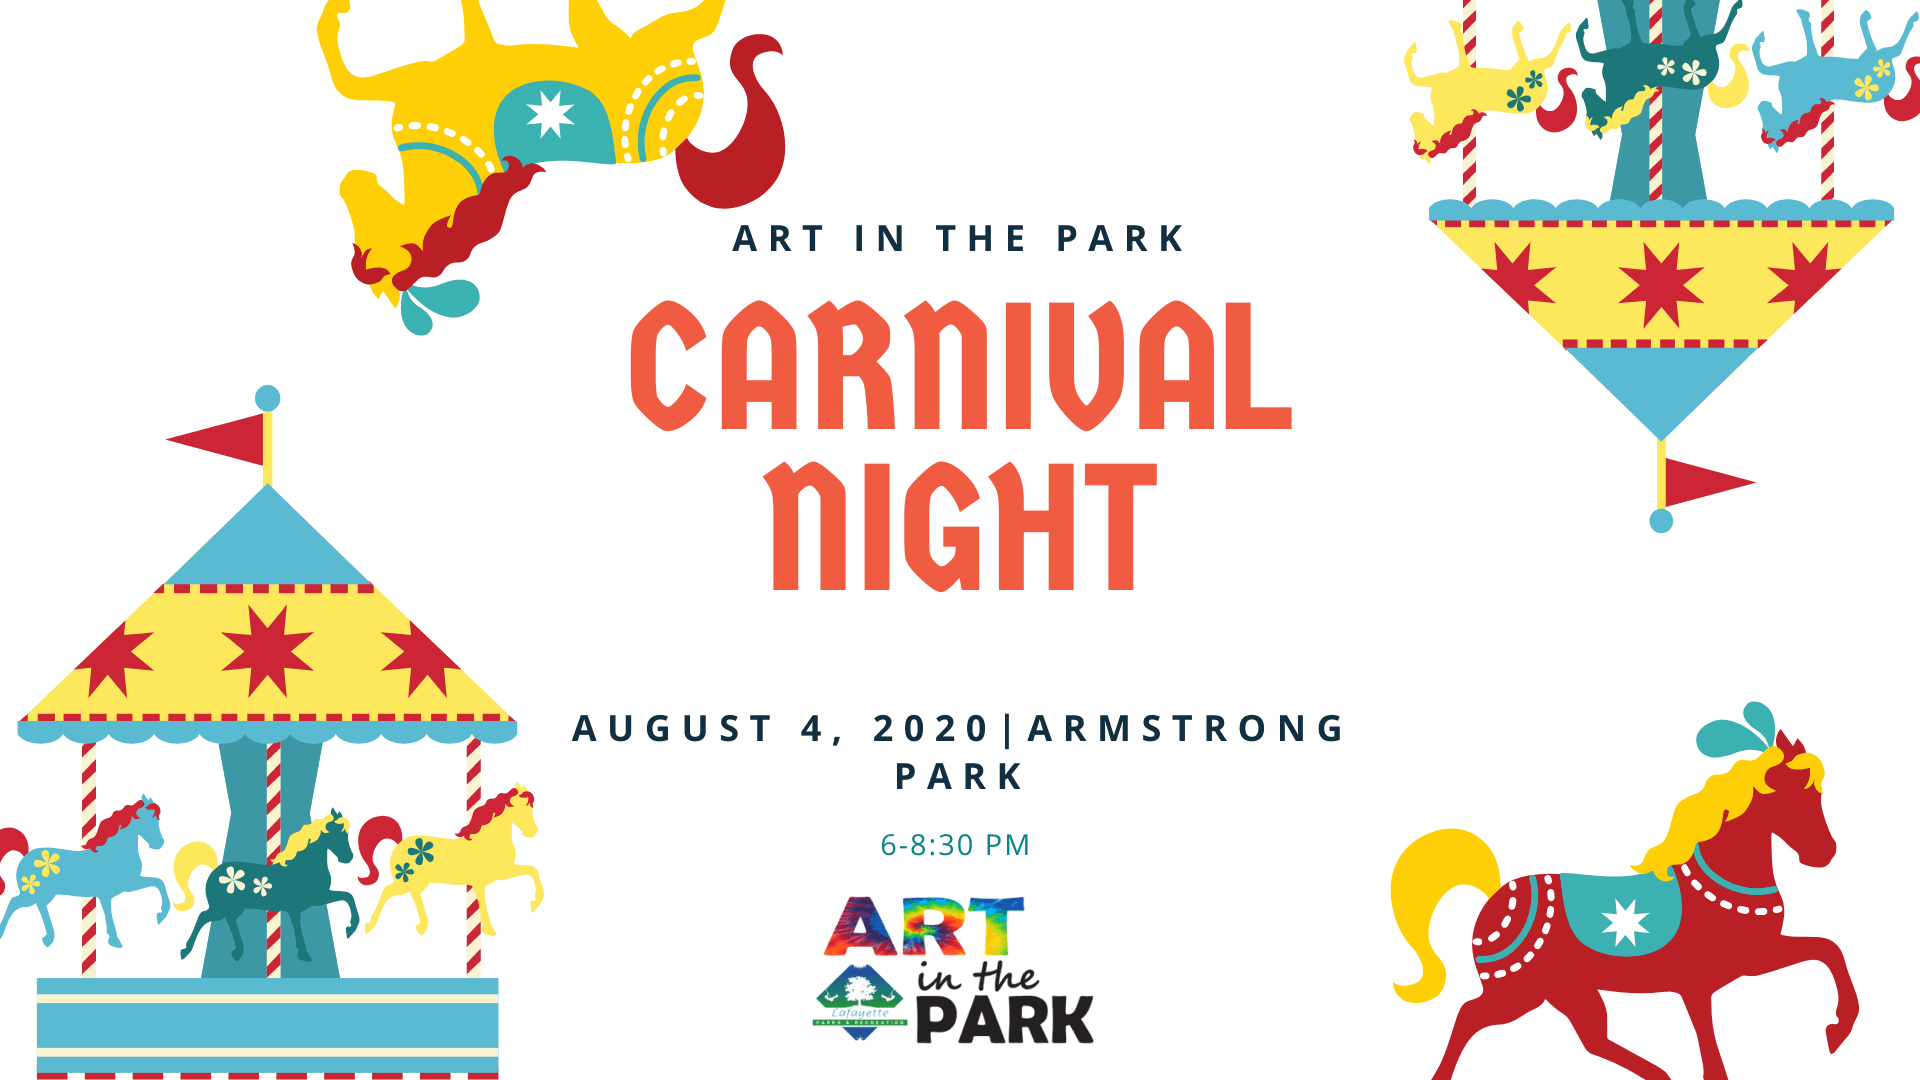 Art in the Park Carnival Night